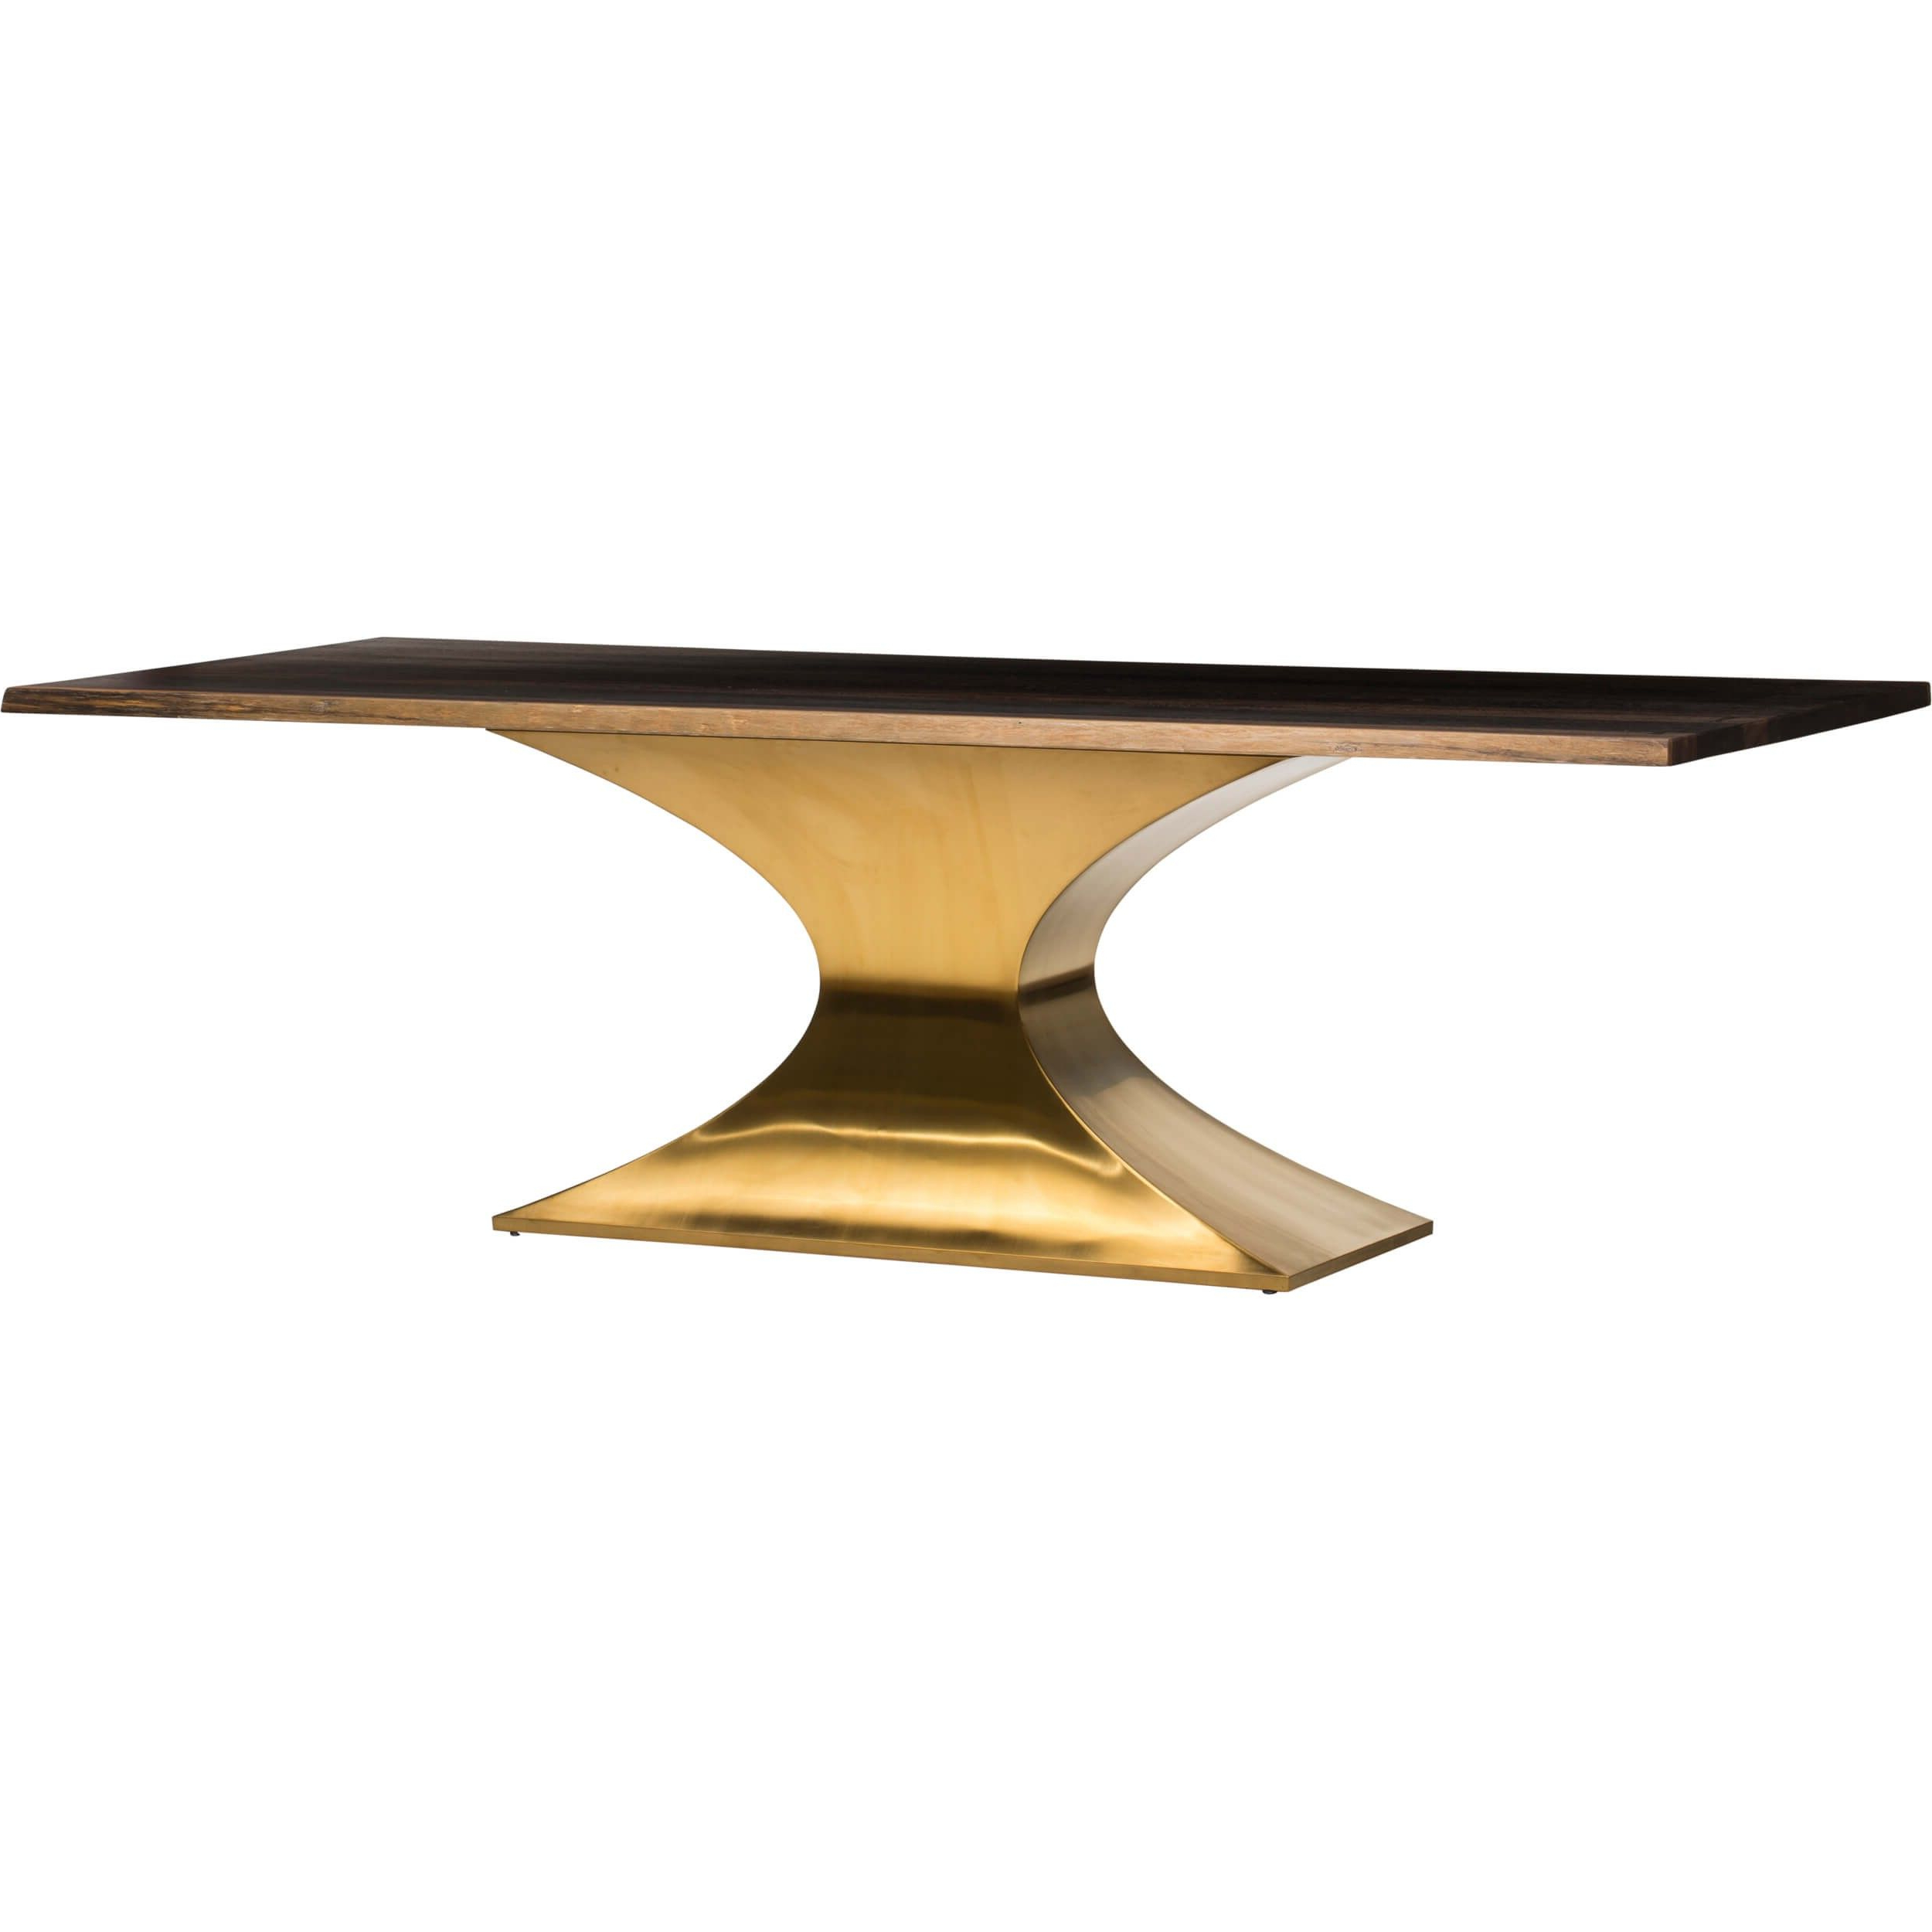 Fashionable Dining Tables In Seared Oak With Brass Detail With Praetorian Dining Table, Seared Oak/brushed Gold Base (View 14 of 25)